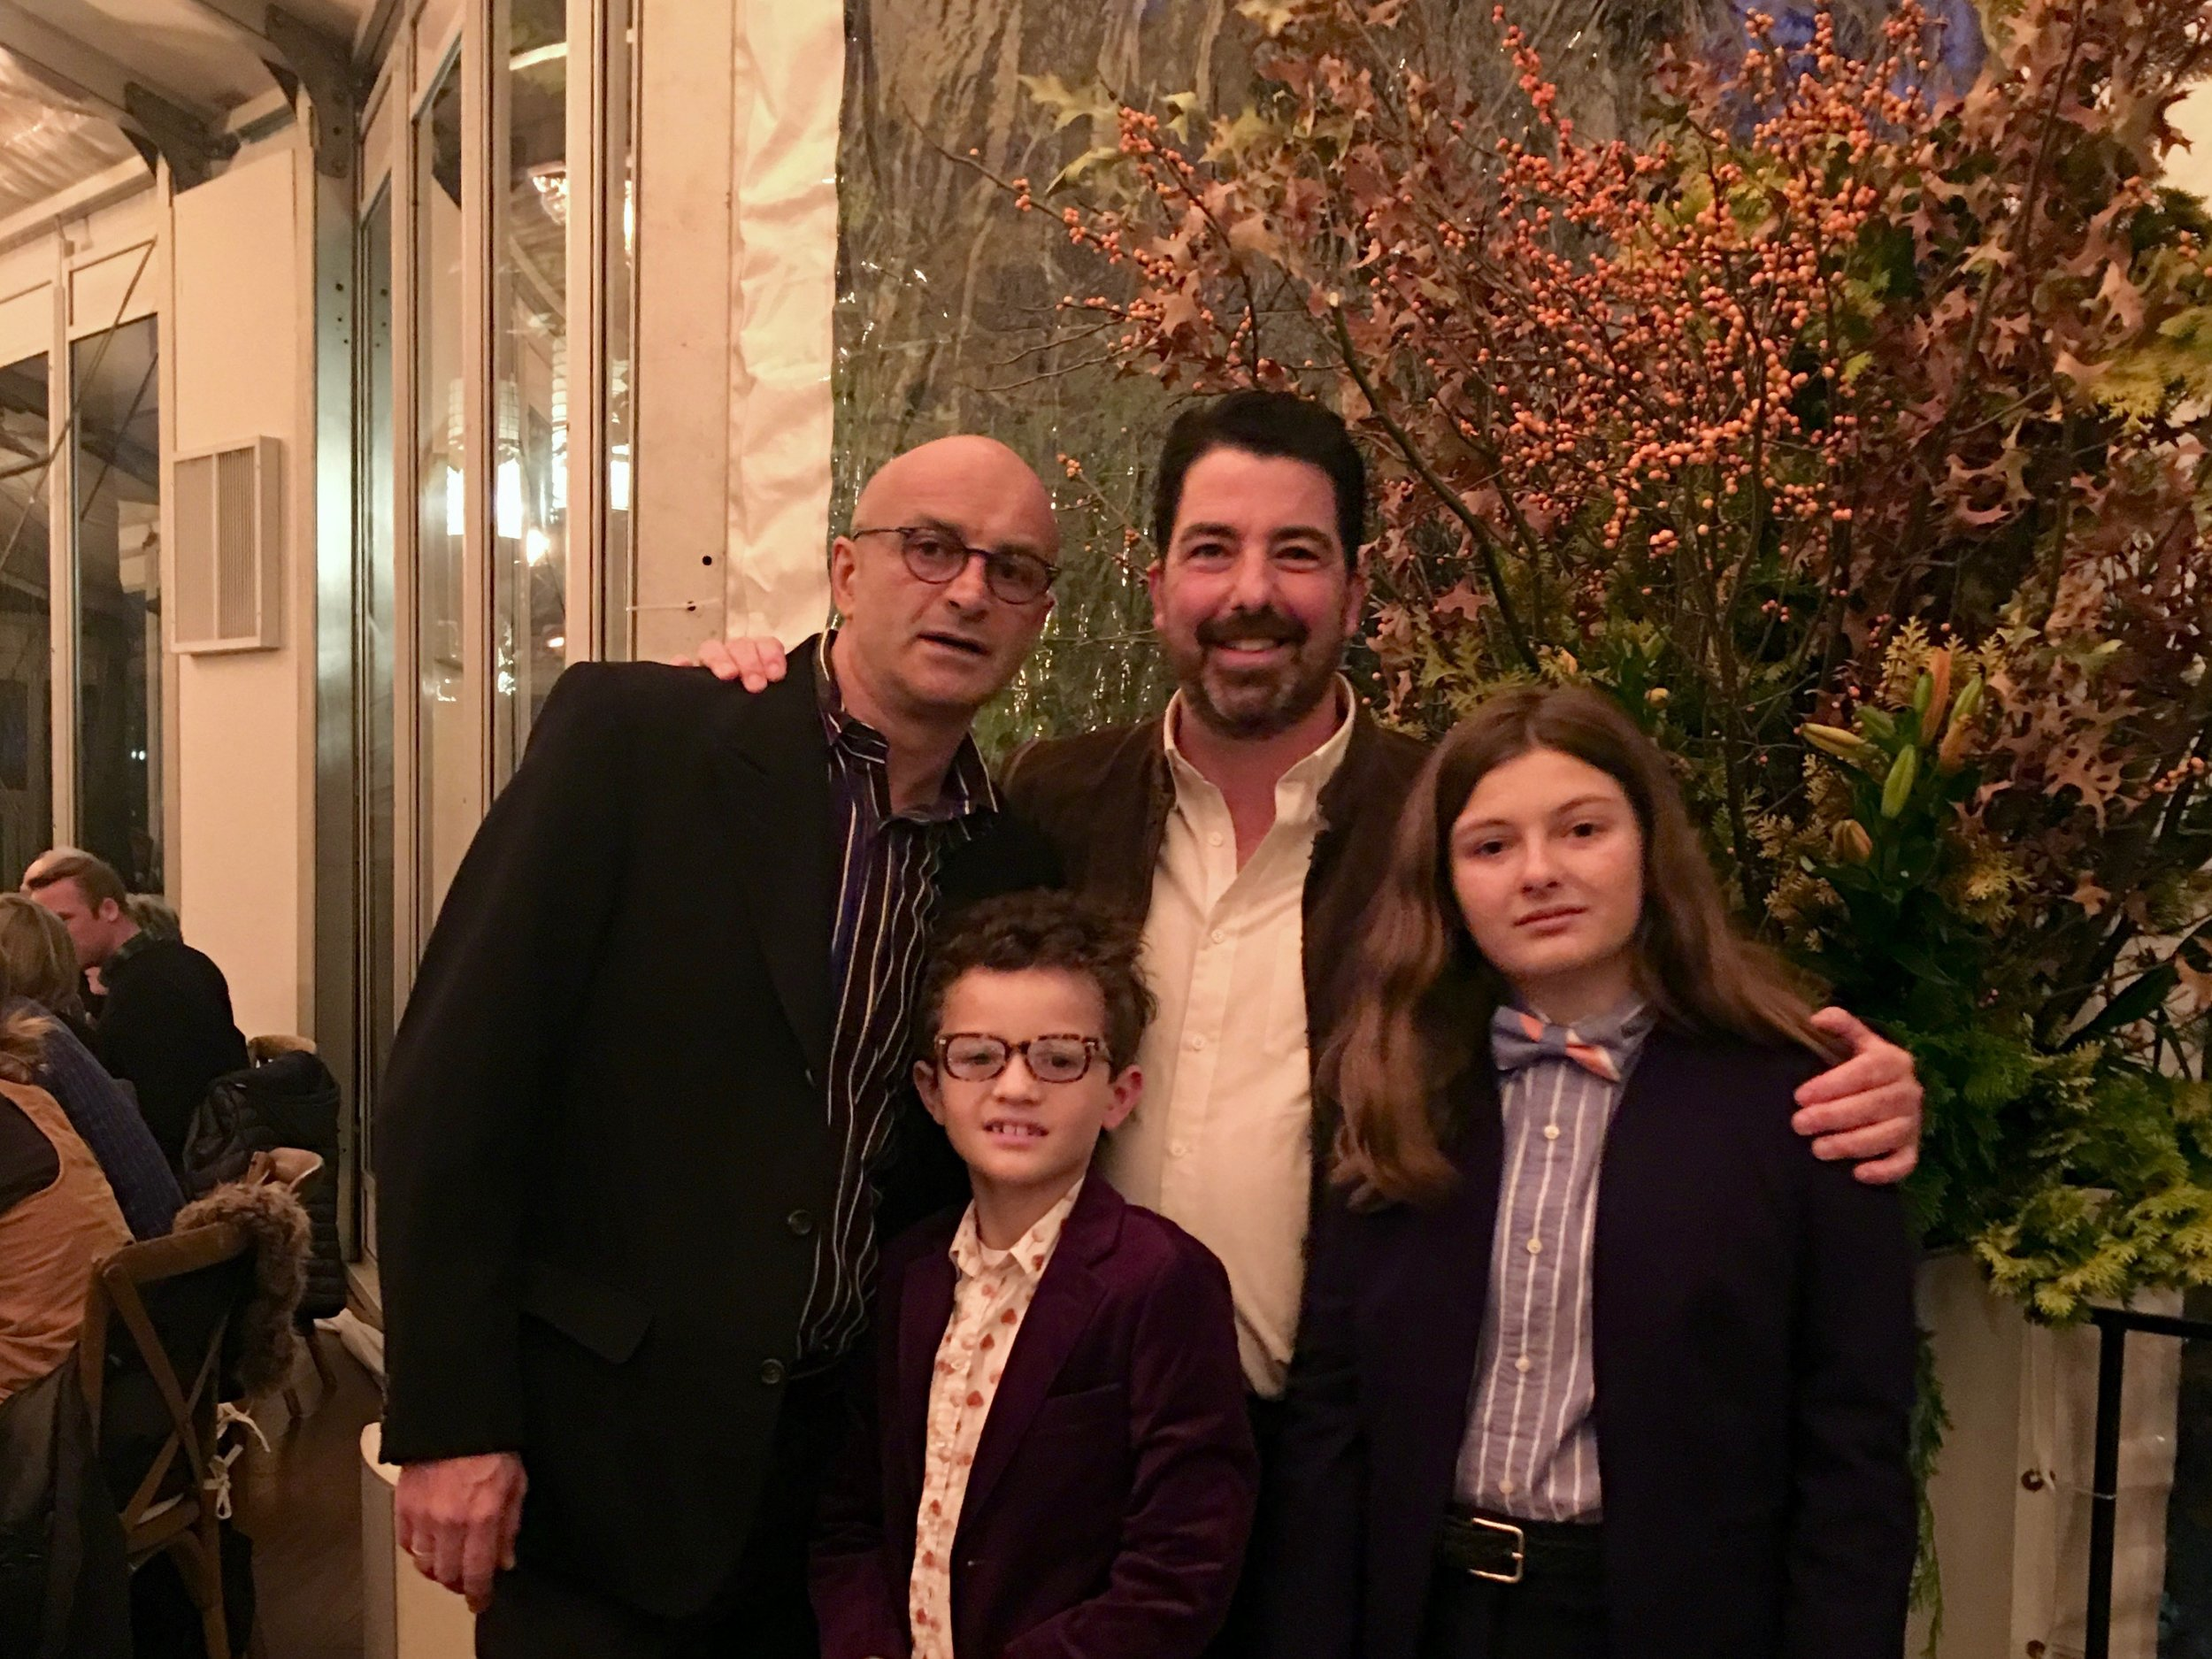 Jim Caiola (right) and David Salama (left), co-proprietors of New York's Tavern on the Green with their kids Leonardo (7) and Georgia (10).